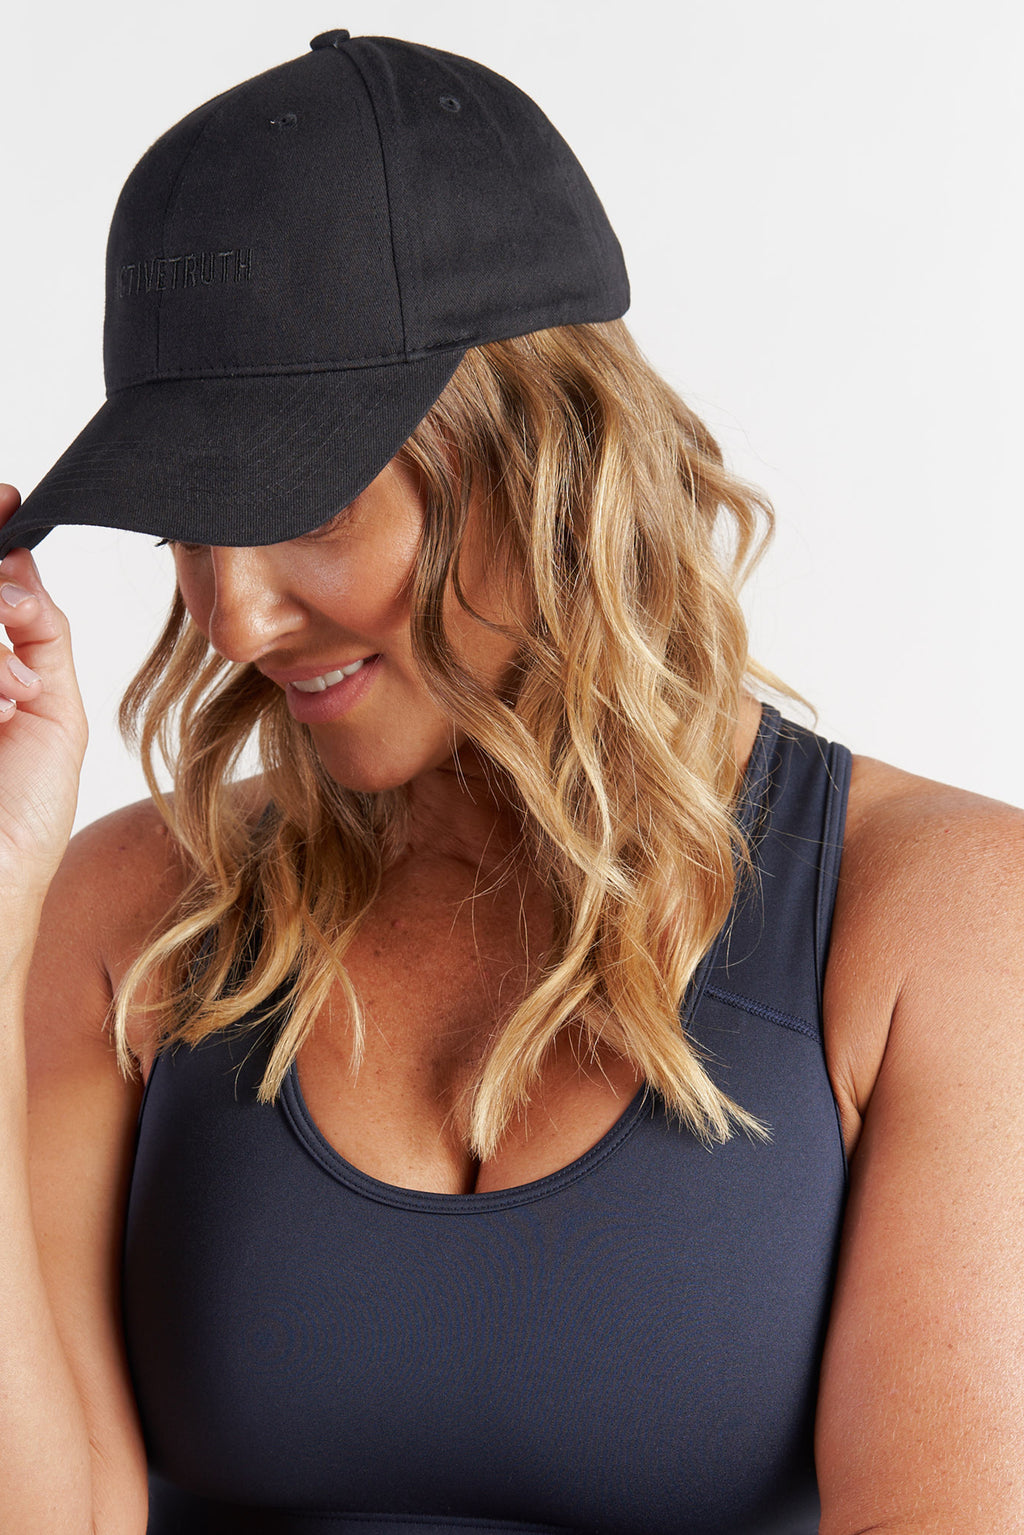 workout-cap-embroidered-hat-black-model2